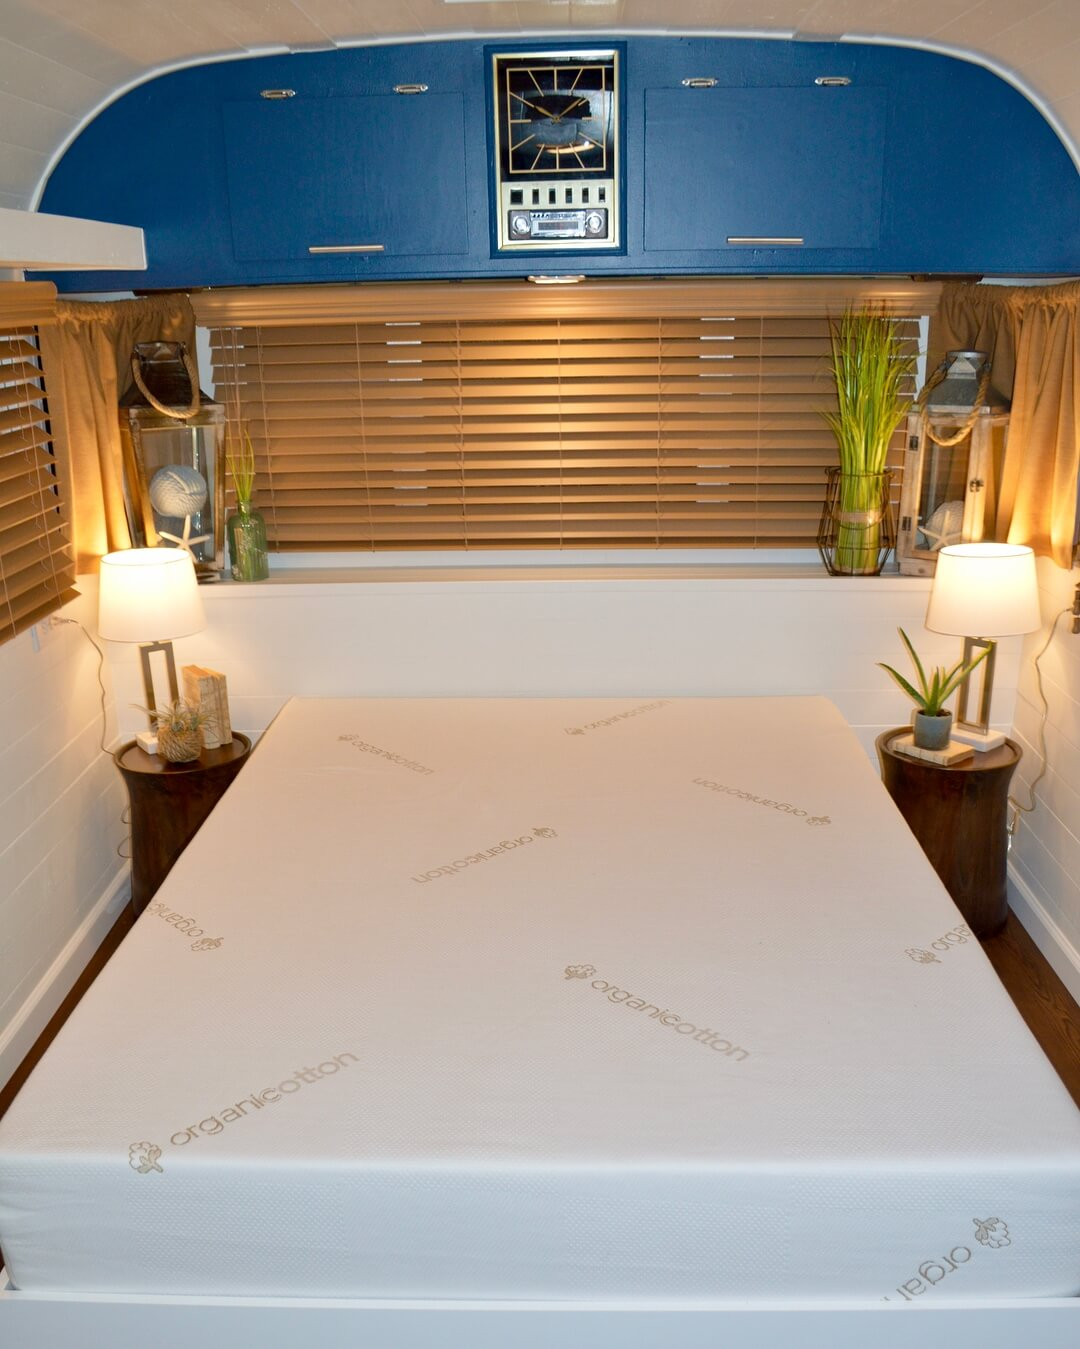 Sedona rv mattress